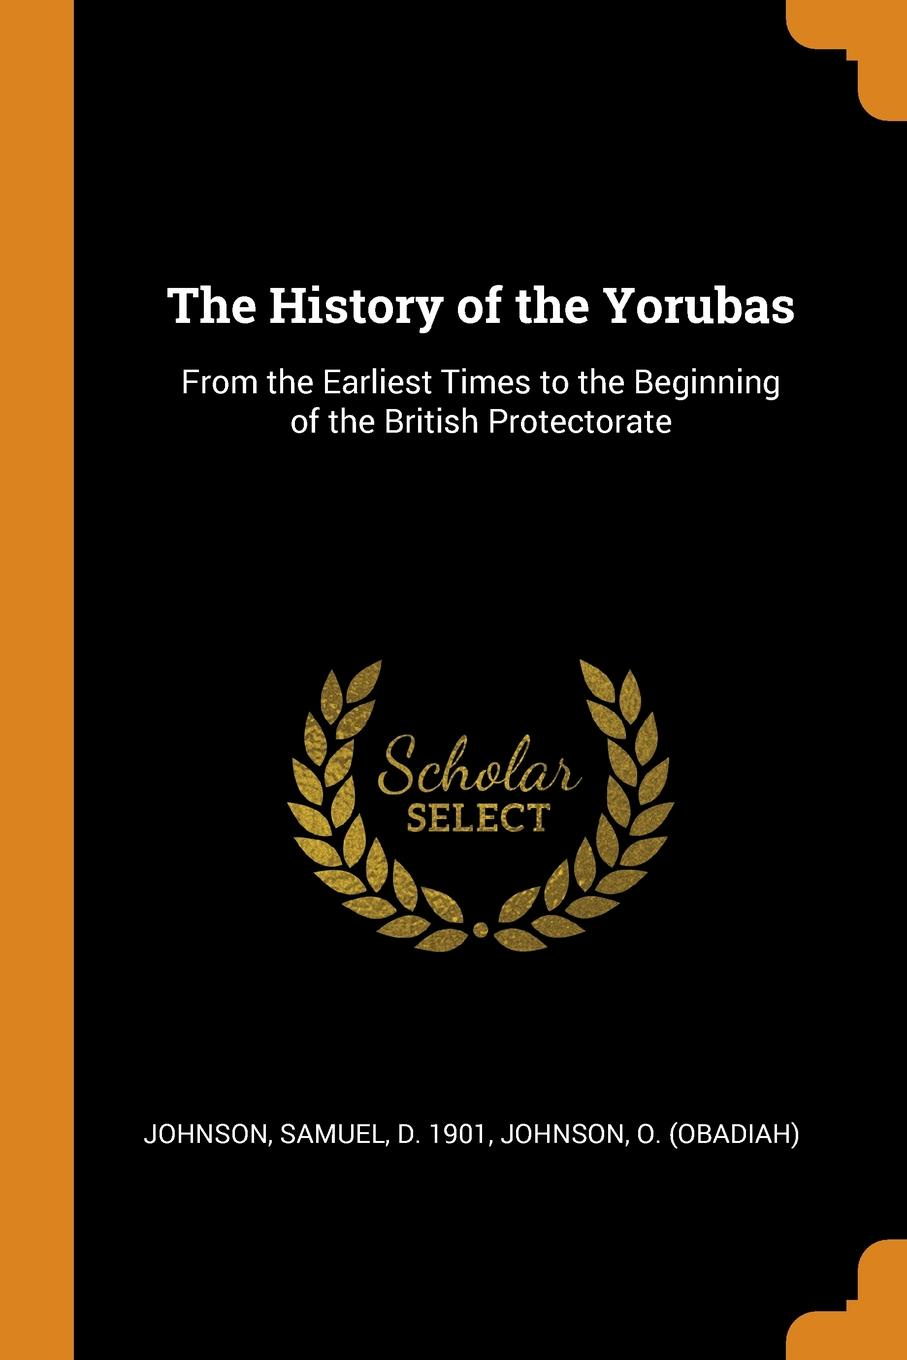 The History of the Yorubas. From the Earliest Times to the Beginning of the British Protectorate